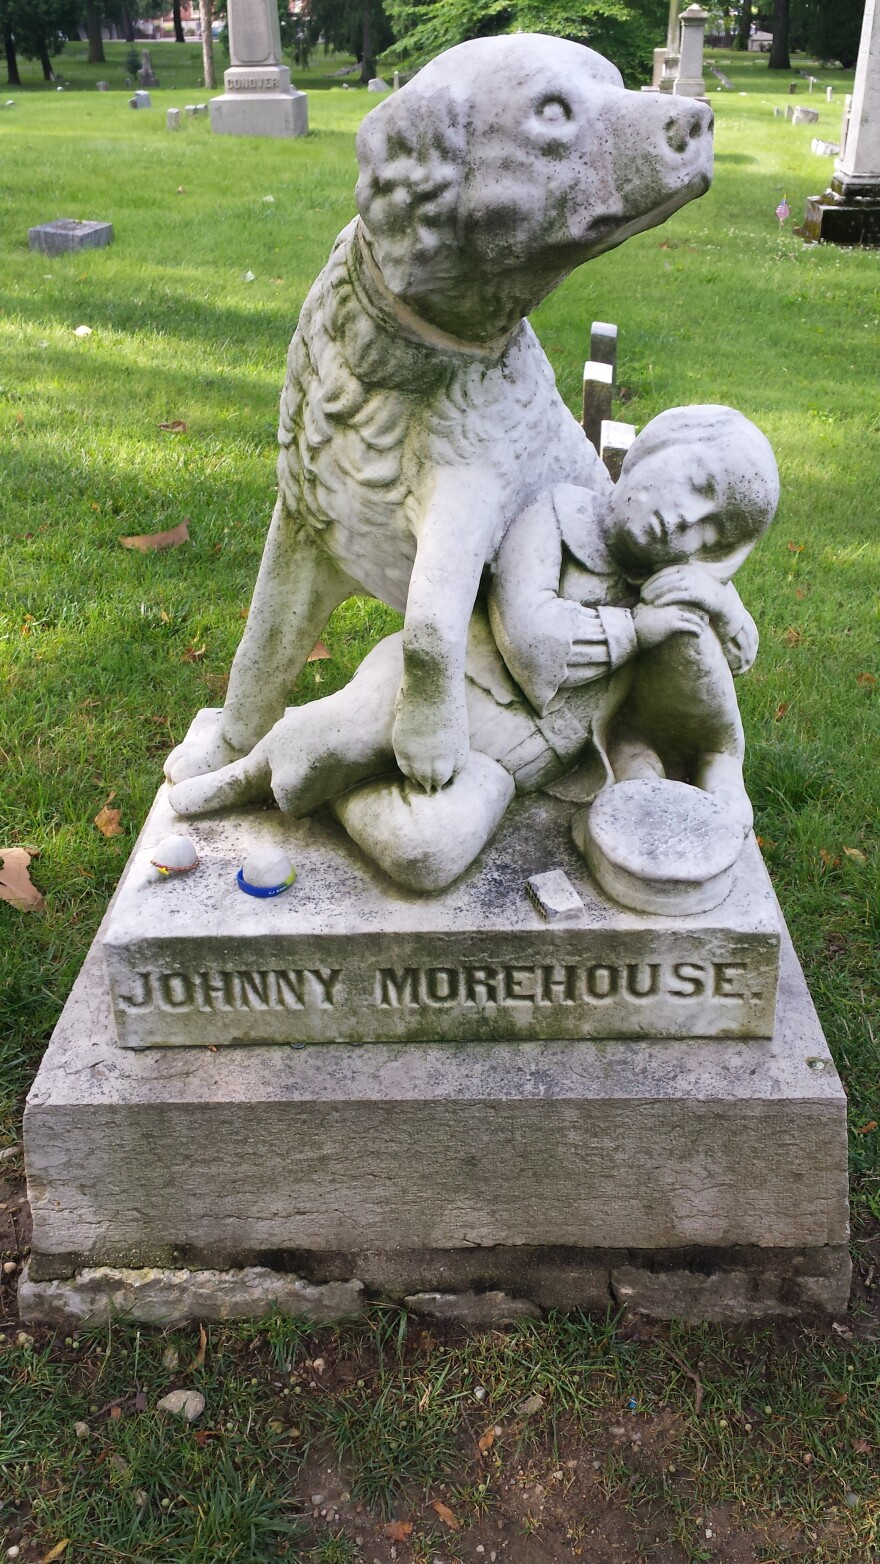 Johnny Morehouse's monument is one of the most iconic at Woodland Cemetery